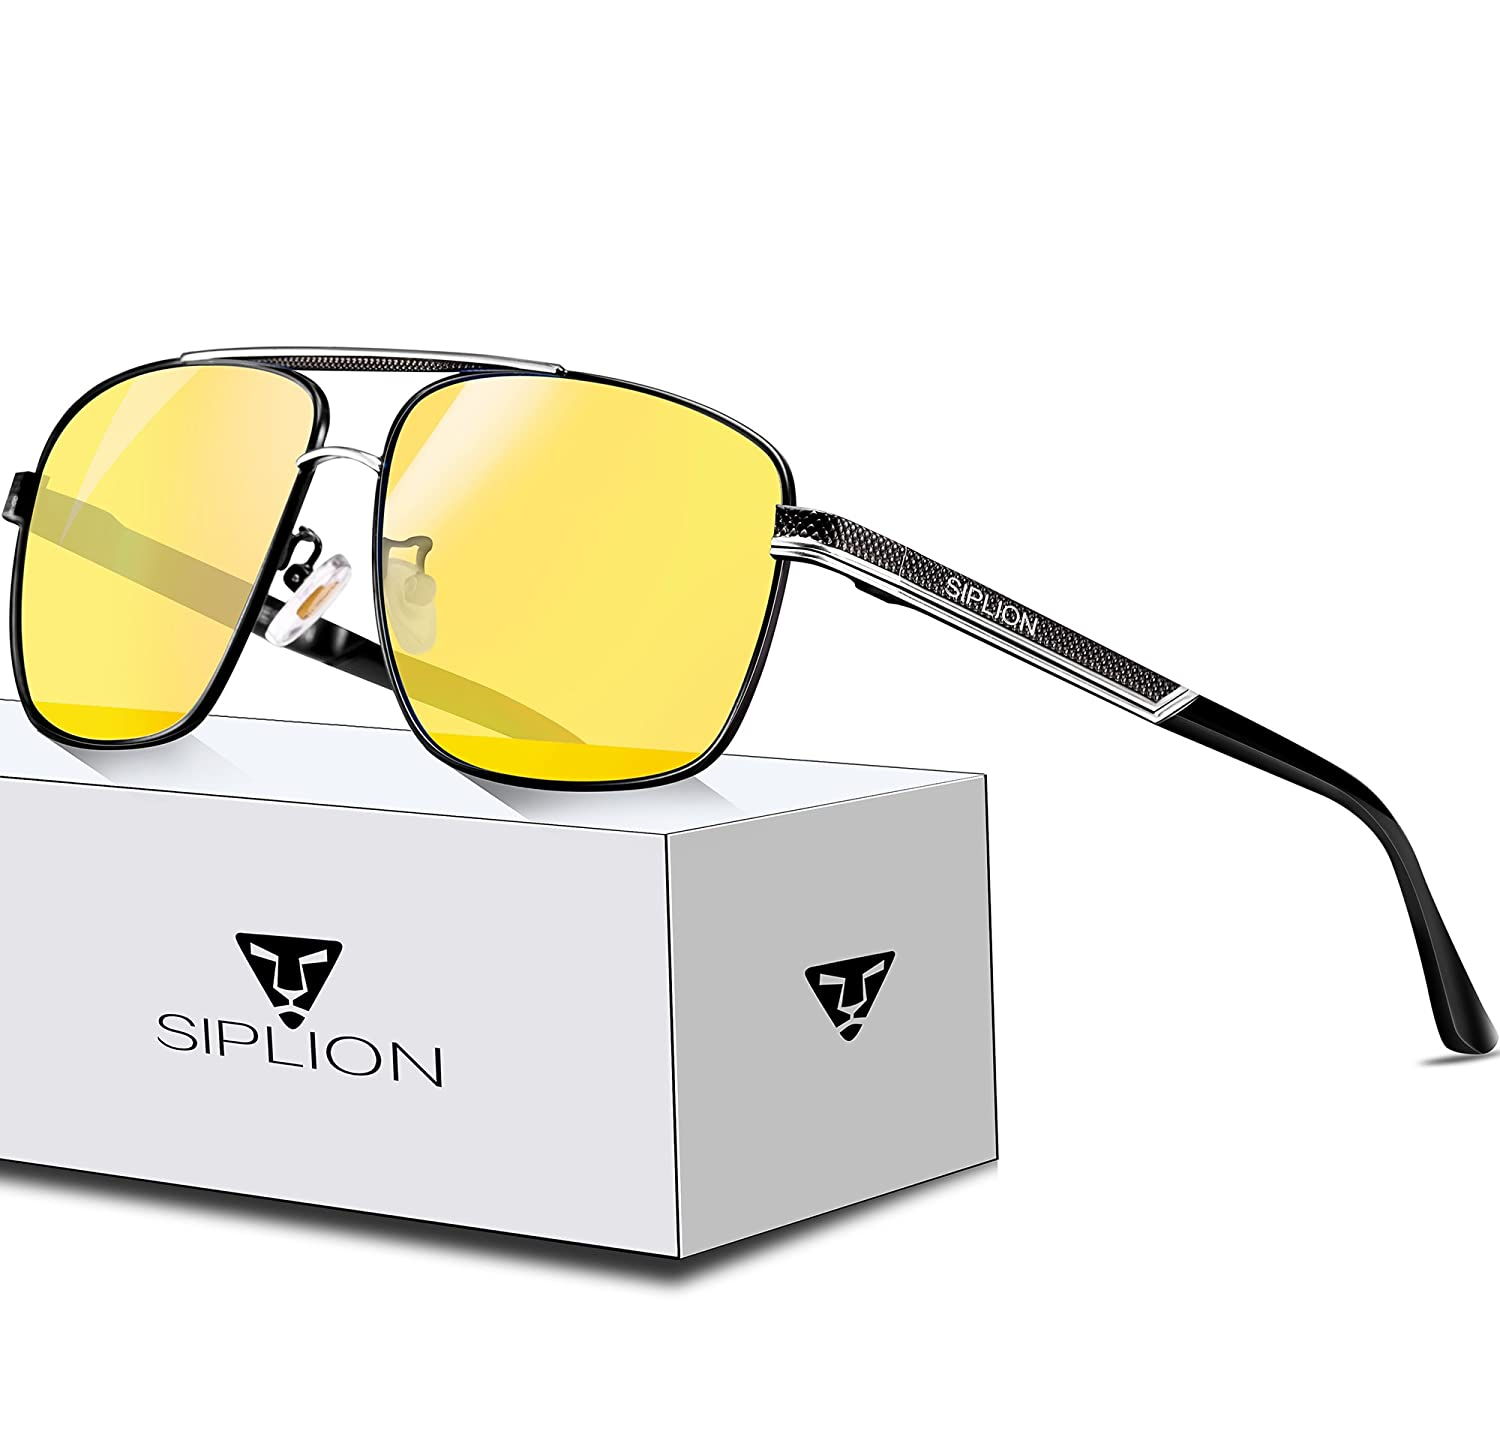 5c6b7739edc SIPLION Men s Driving Polarized Rectangular Square Sunglasses Metal Frame